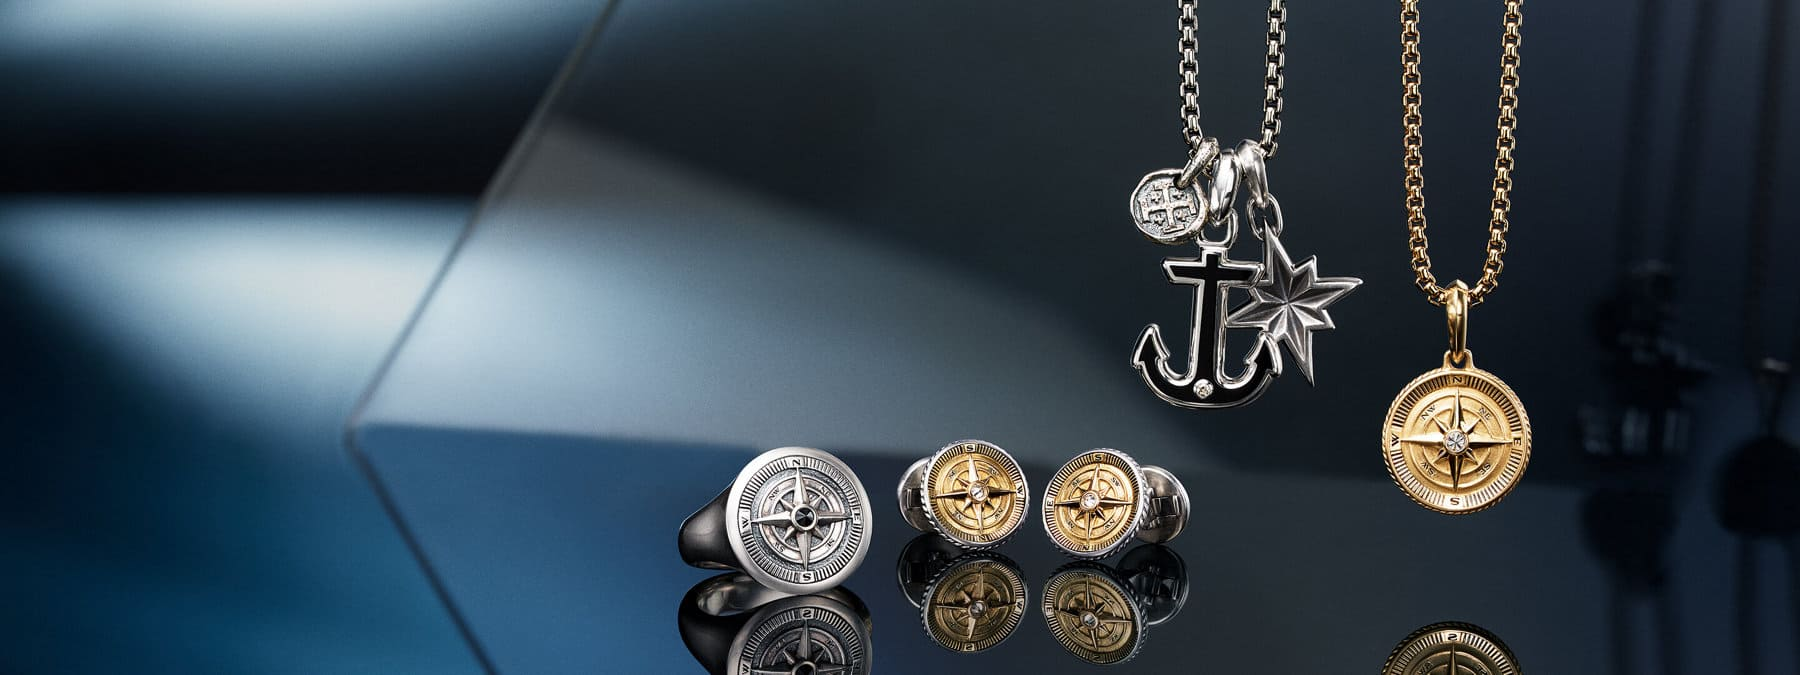 A color photograph shows a horizontal arrangement of David Yurman men's designs from the Maritime®, Shipwreck and Chain collections atop and in front of reflective surfaces with angular, multi-colored reflections of light and jewelry. The Maritime® compass ring is crafted from sterling silver with a black diamond center stone. The pair of Maritime® compass cufflinks is crafted from sterling silver with 18K yellow gold and white diamond center stones. The sterling silver Shipwreck coin amulet is strung on a sterling silver box-chain necklace with two Maritime® amulets: an anchor crafted from sterling silver with black onyx, and a north star crafted from sterling silver. The final Maritime® compass amulet is crafted from 18K yellow gold with a diamond center stone, and is strung on an 18K yellow gold box-chain necklace.